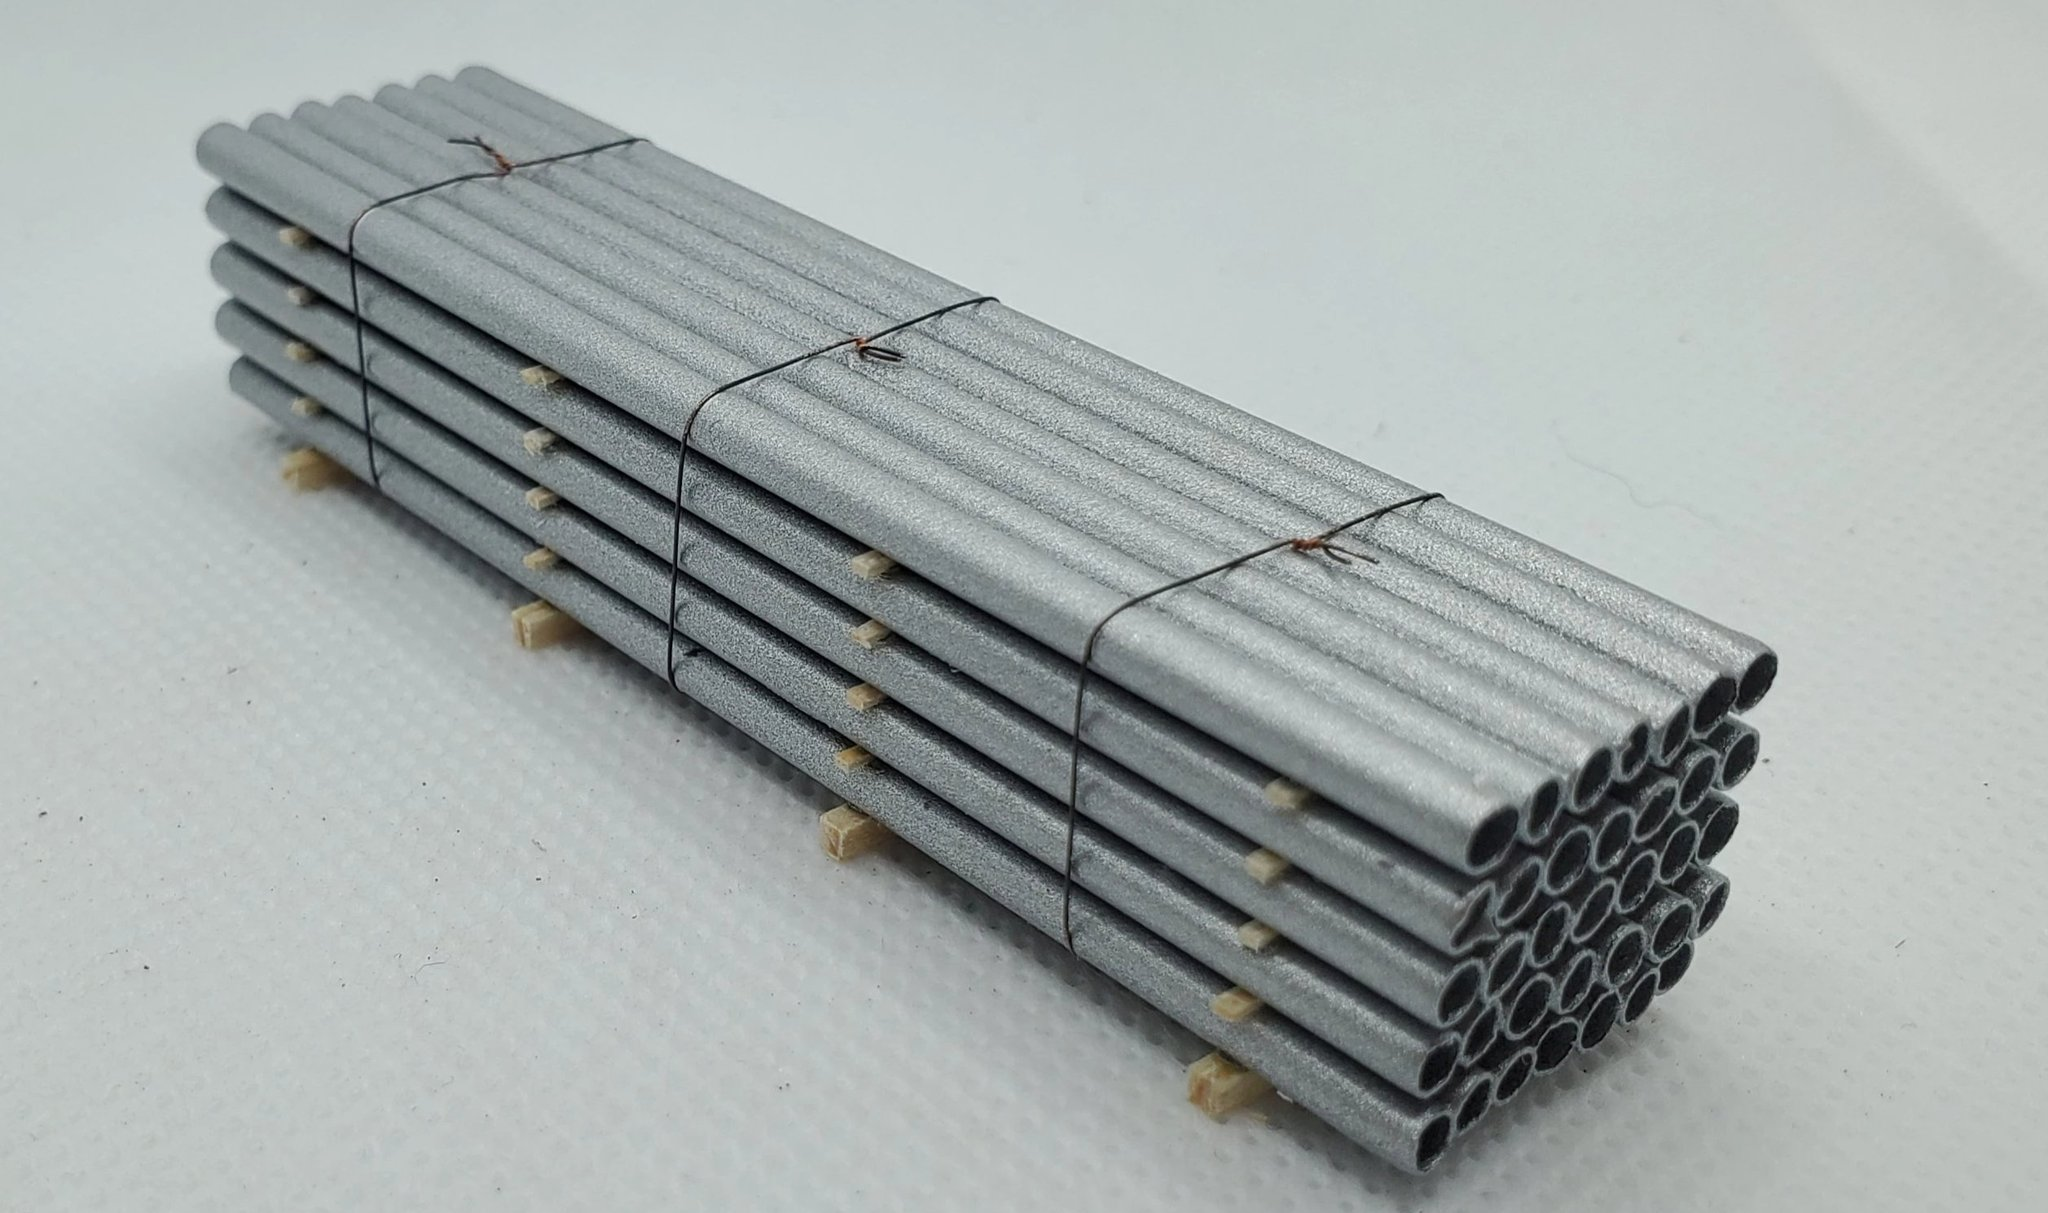 N Scale - CG Model Trains - 13545 - Railcar Loads - Painted/Unlettered - Silver Pipe Load